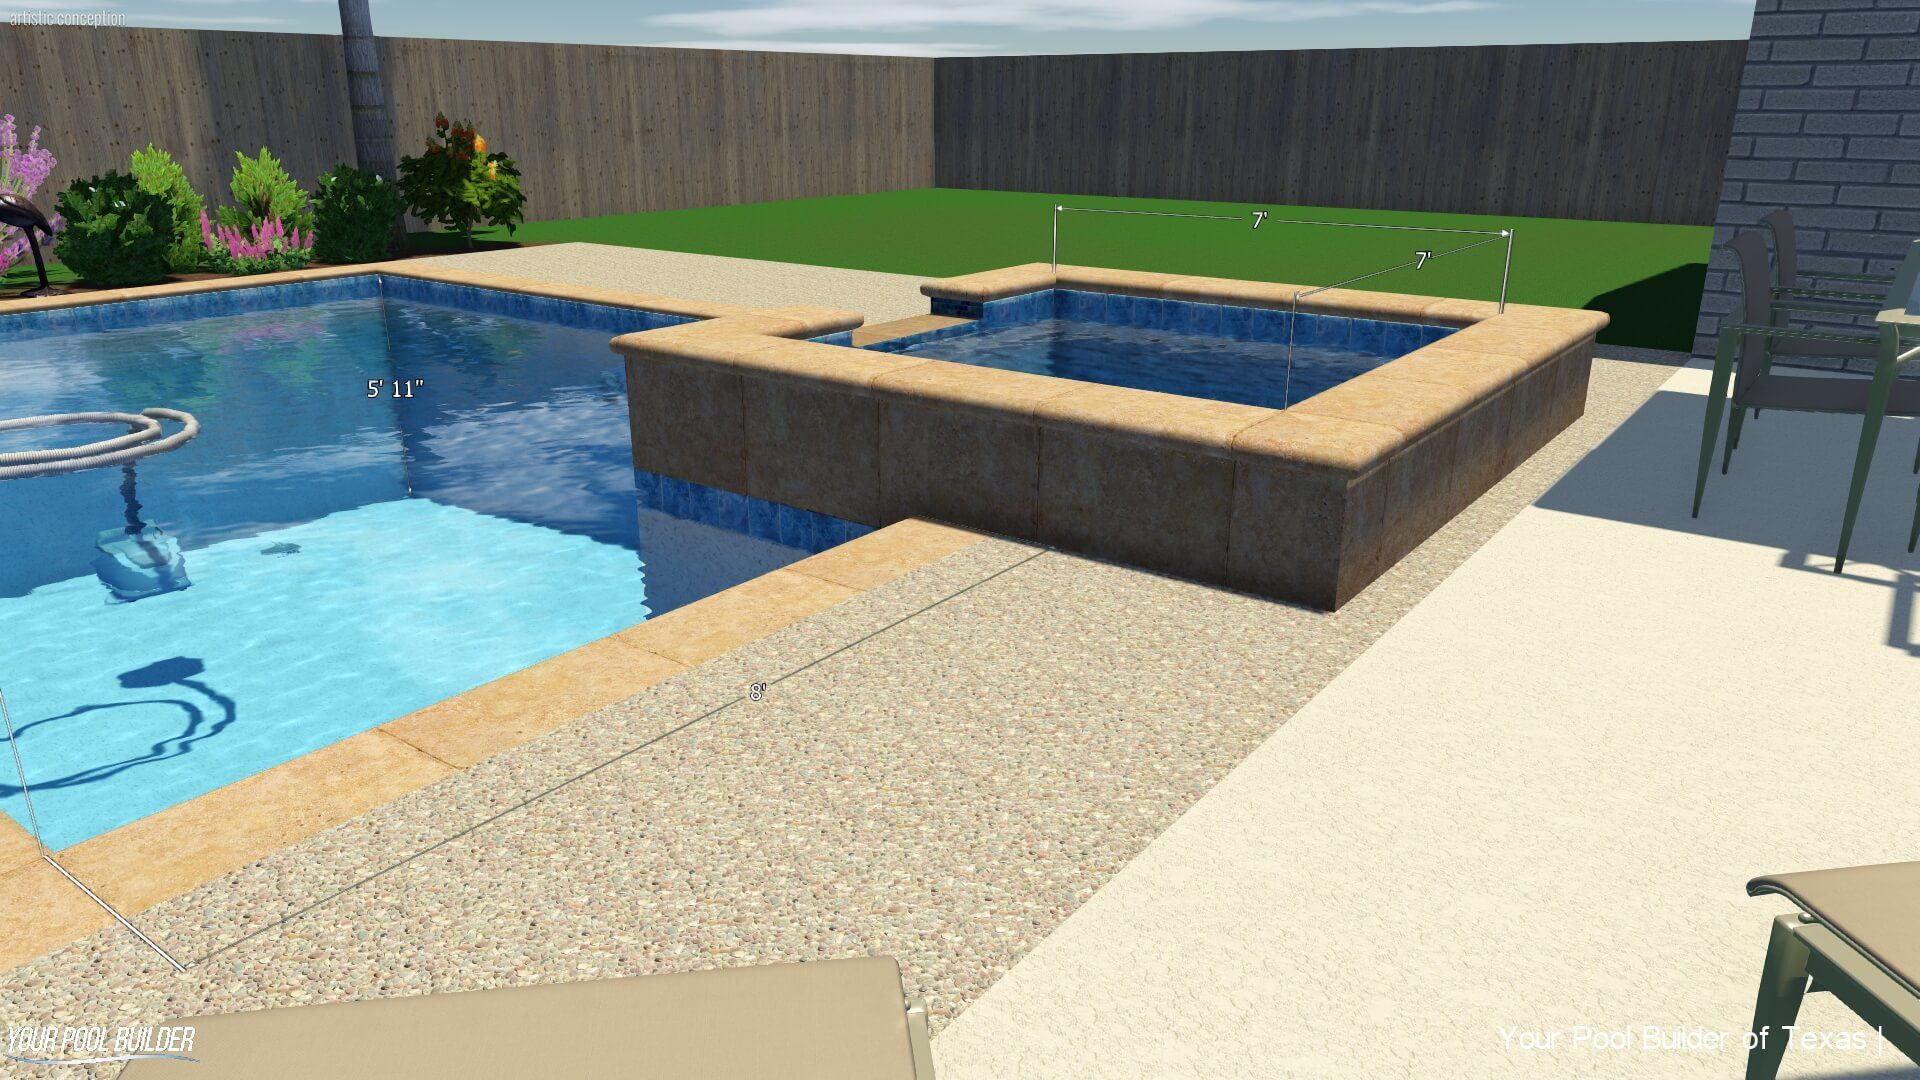 Basic Pool Construction Package | Pool Design Ideas ...